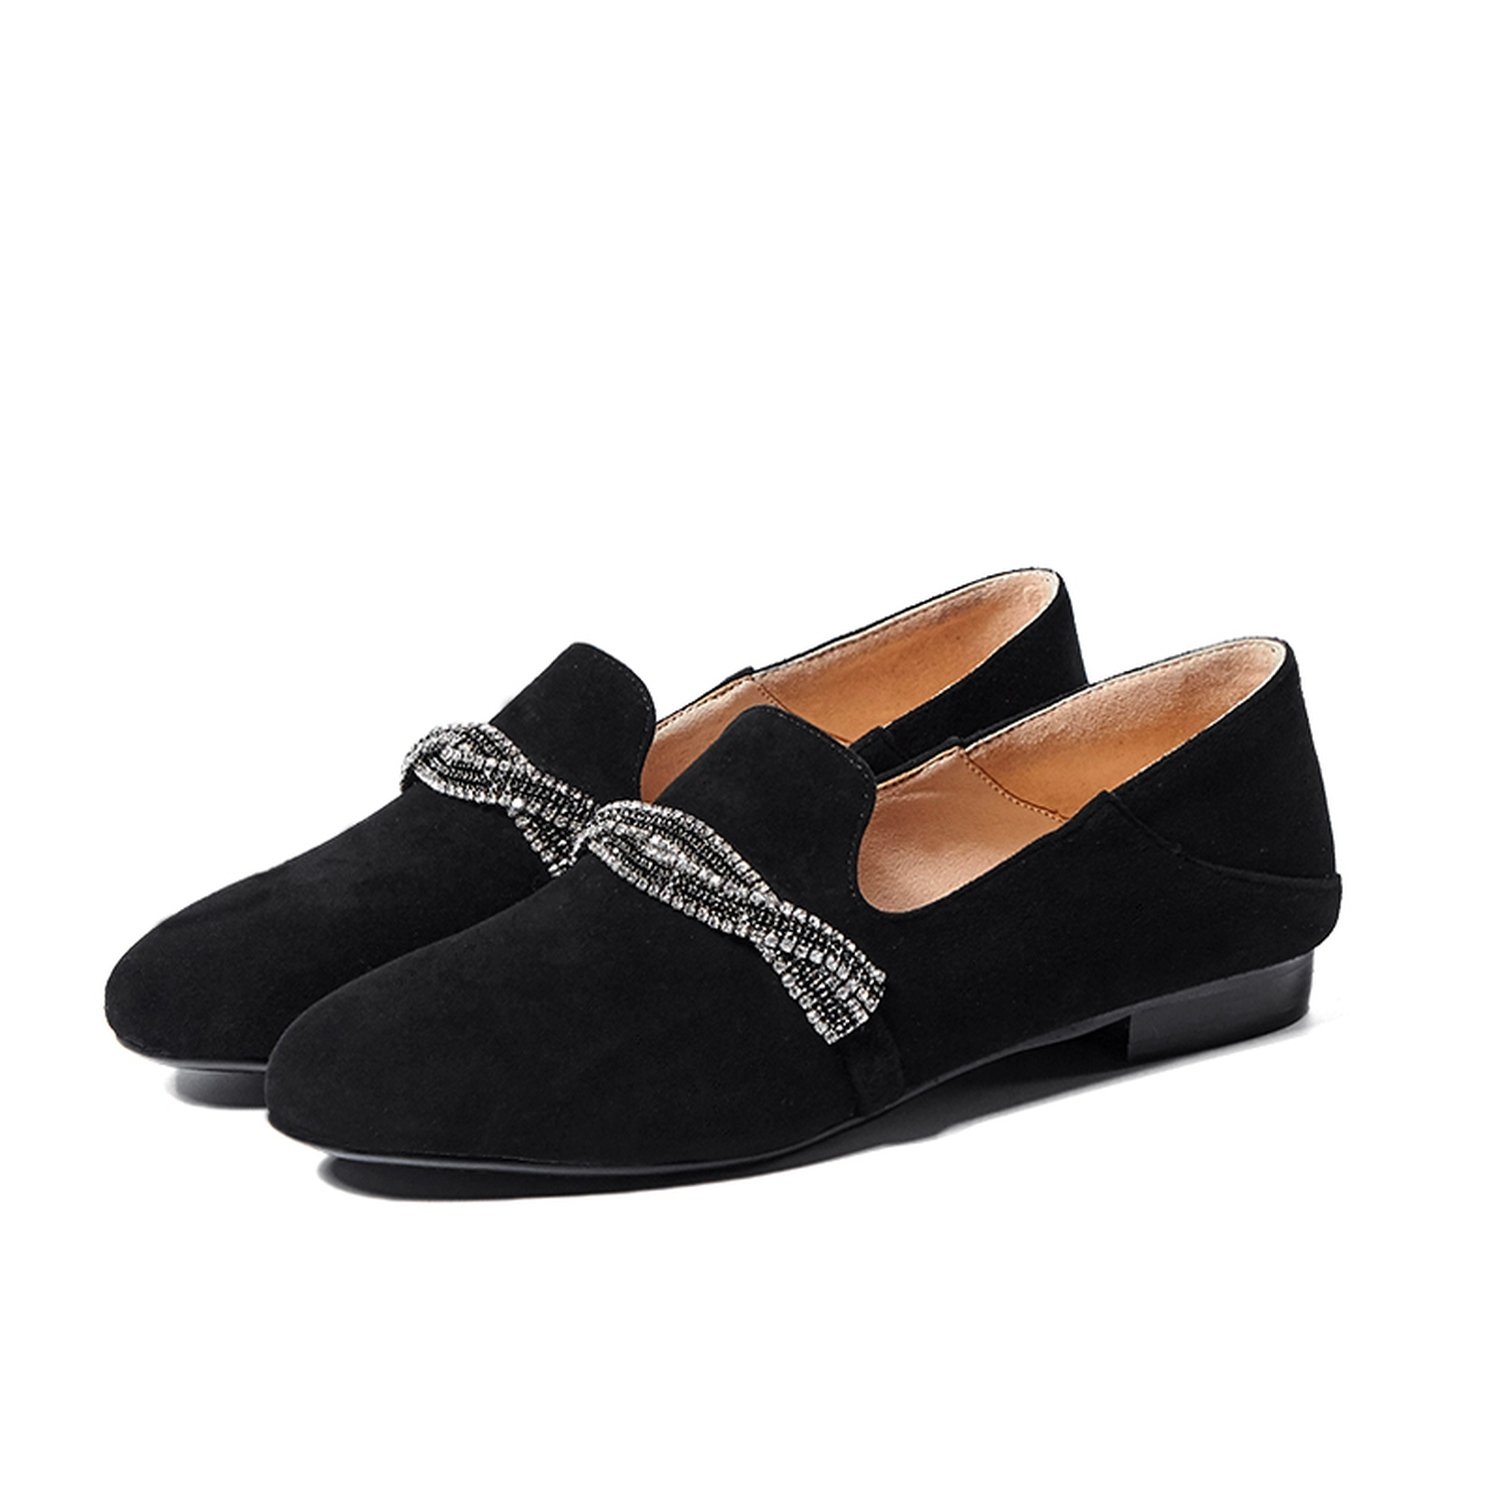 Zcaosma Women Flat Shoes Real Suede Leather Loafer Shoes Woman Spring Autumn Casual Footwear Slip On